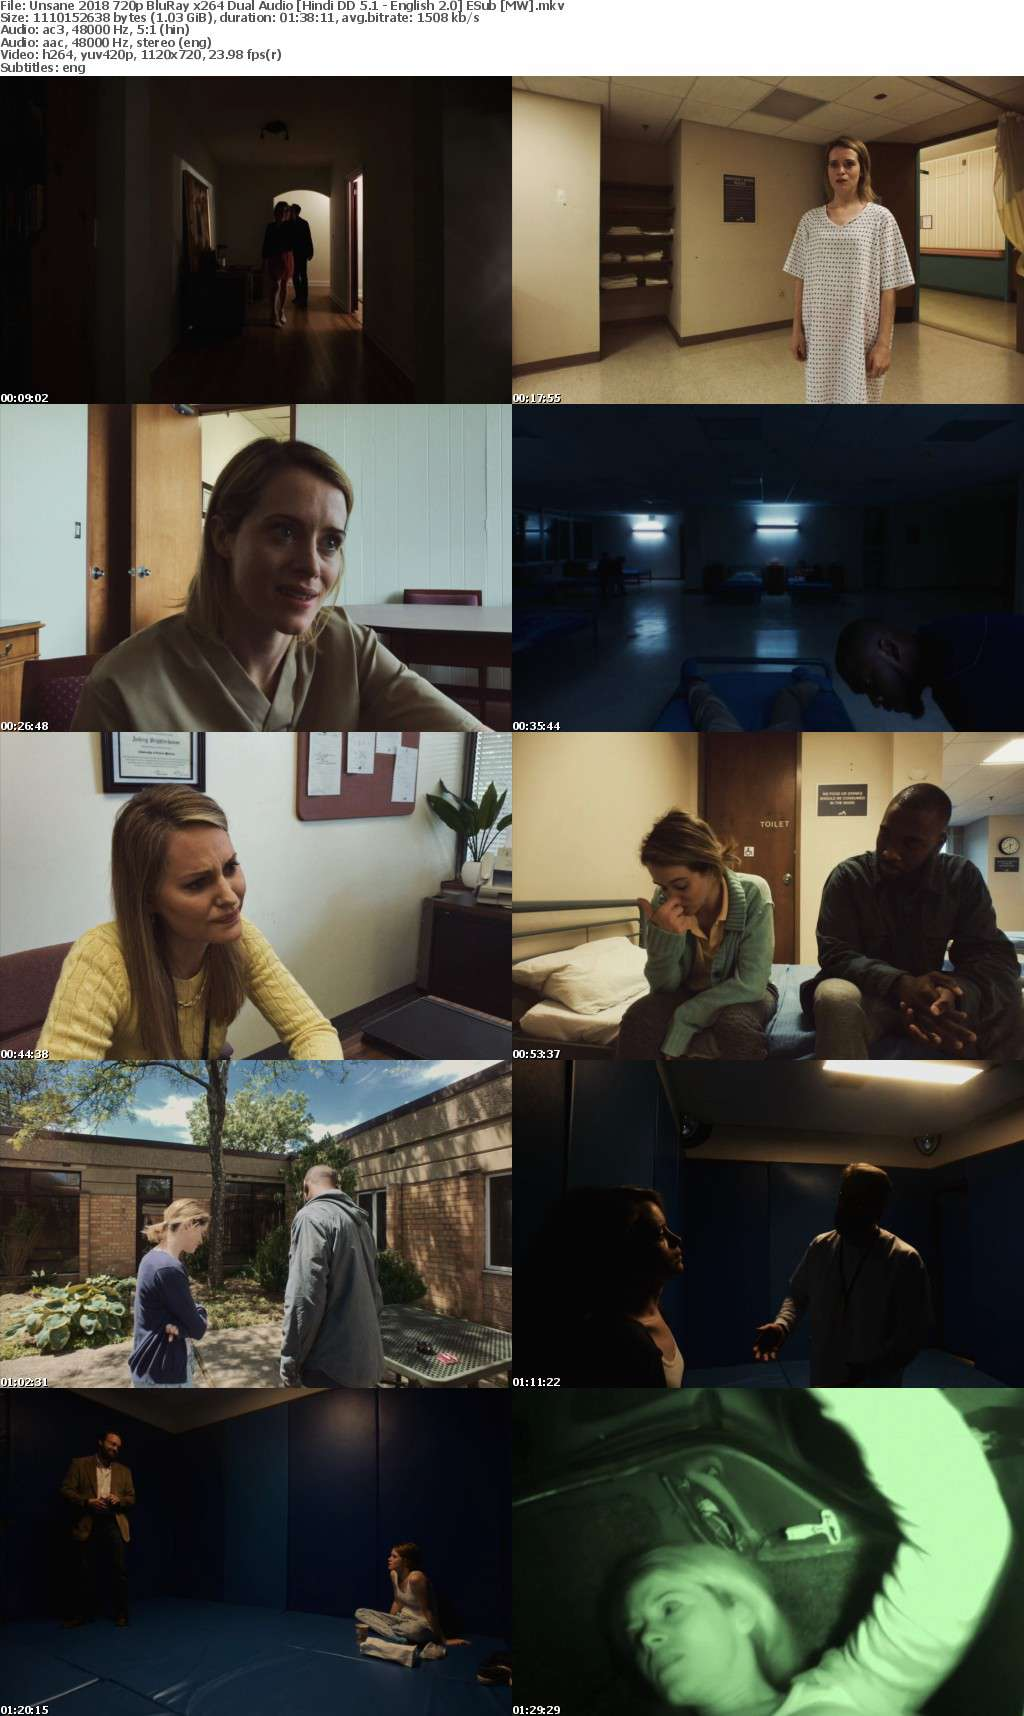 Unsane (2018) 720p BluRay x264 Dual Audio Hindi DD 5.1 - English 2.0 ESub MW